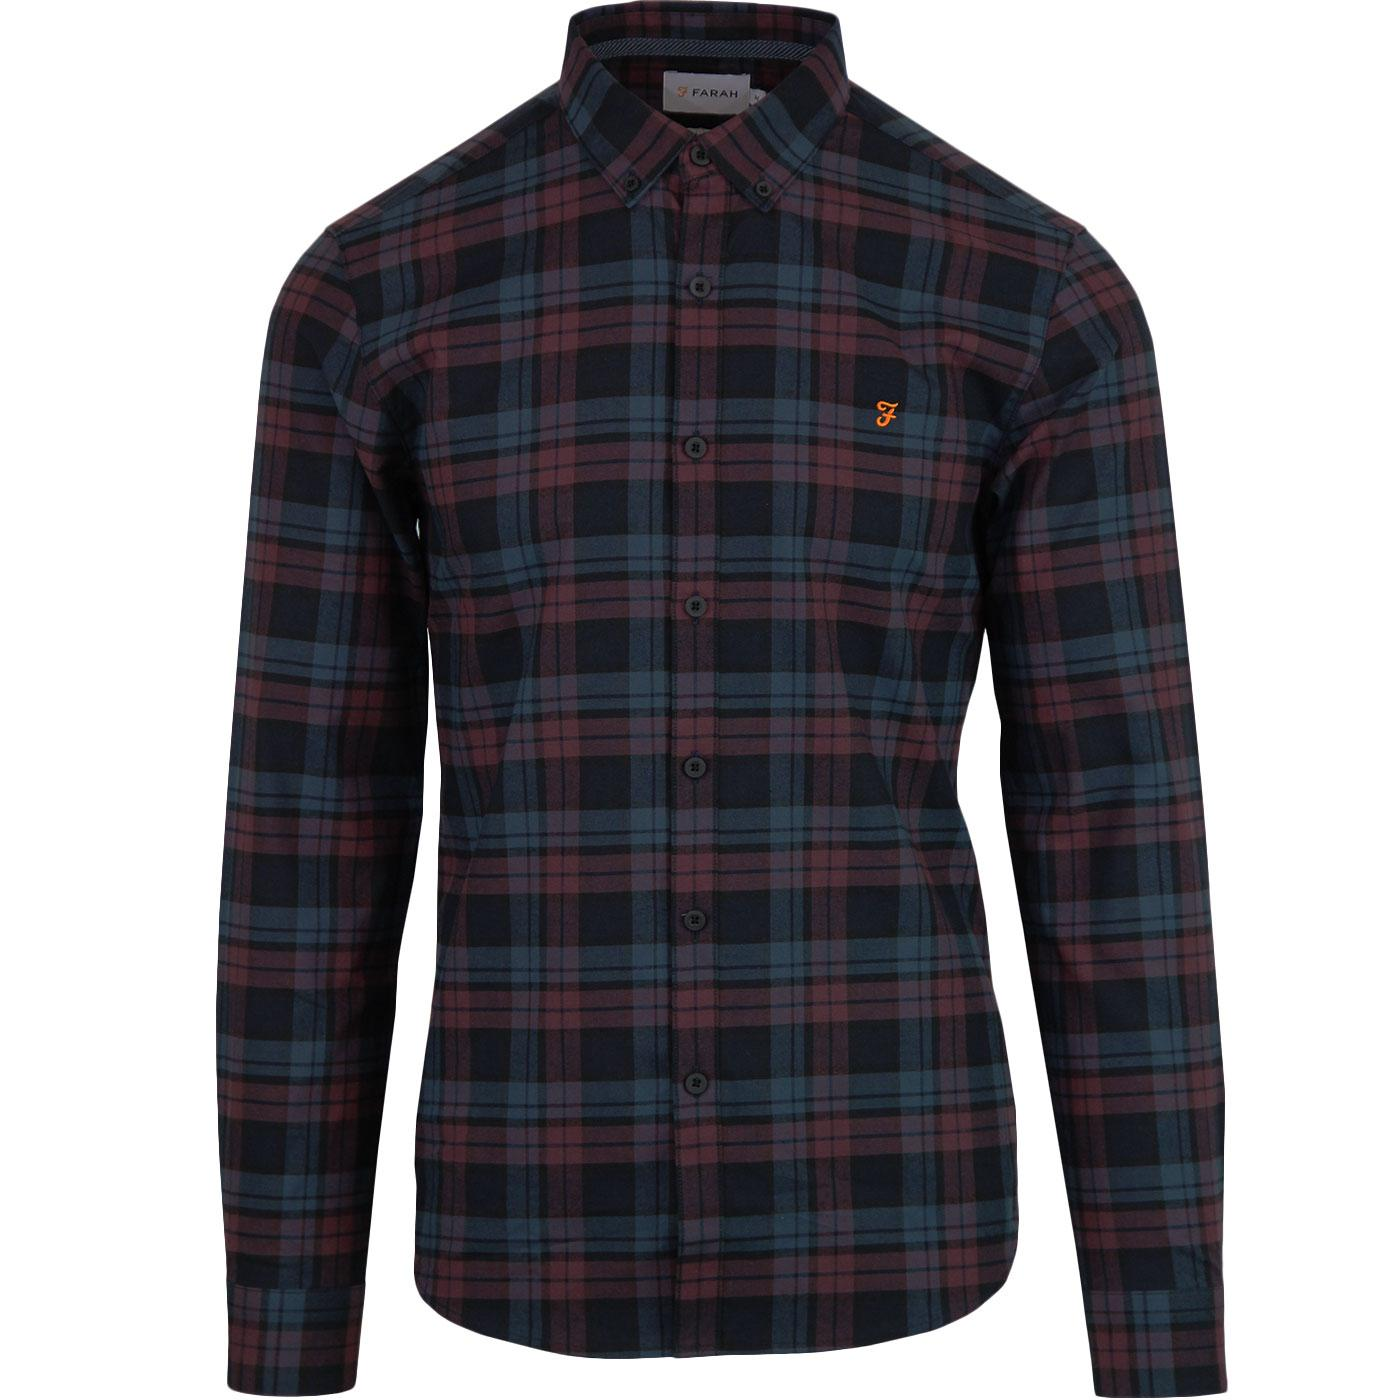 Radley FARAH Retro 70s Slim Fit Check Shirt in Red